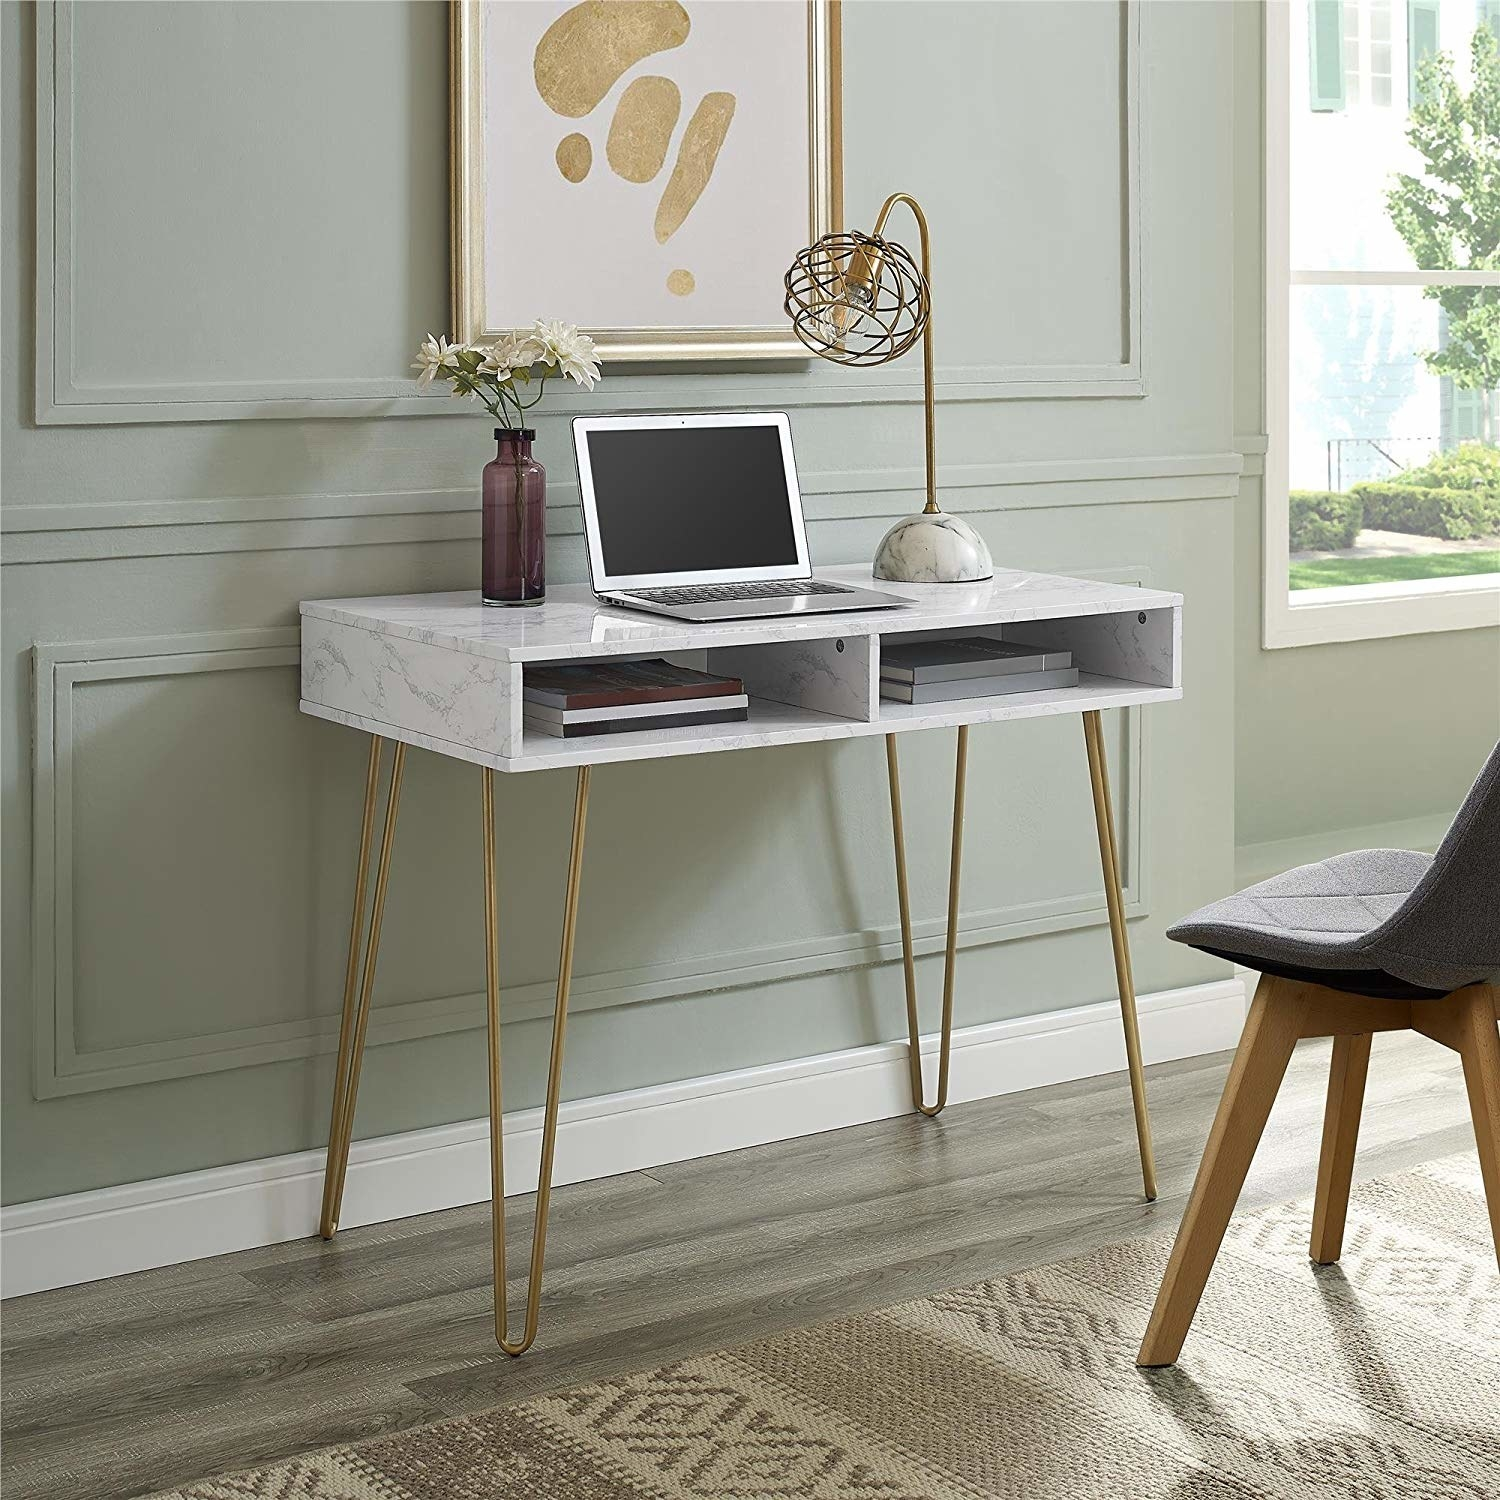 mid-century modern style white marble print desk with two open compartments with access in the front and gold tone legs